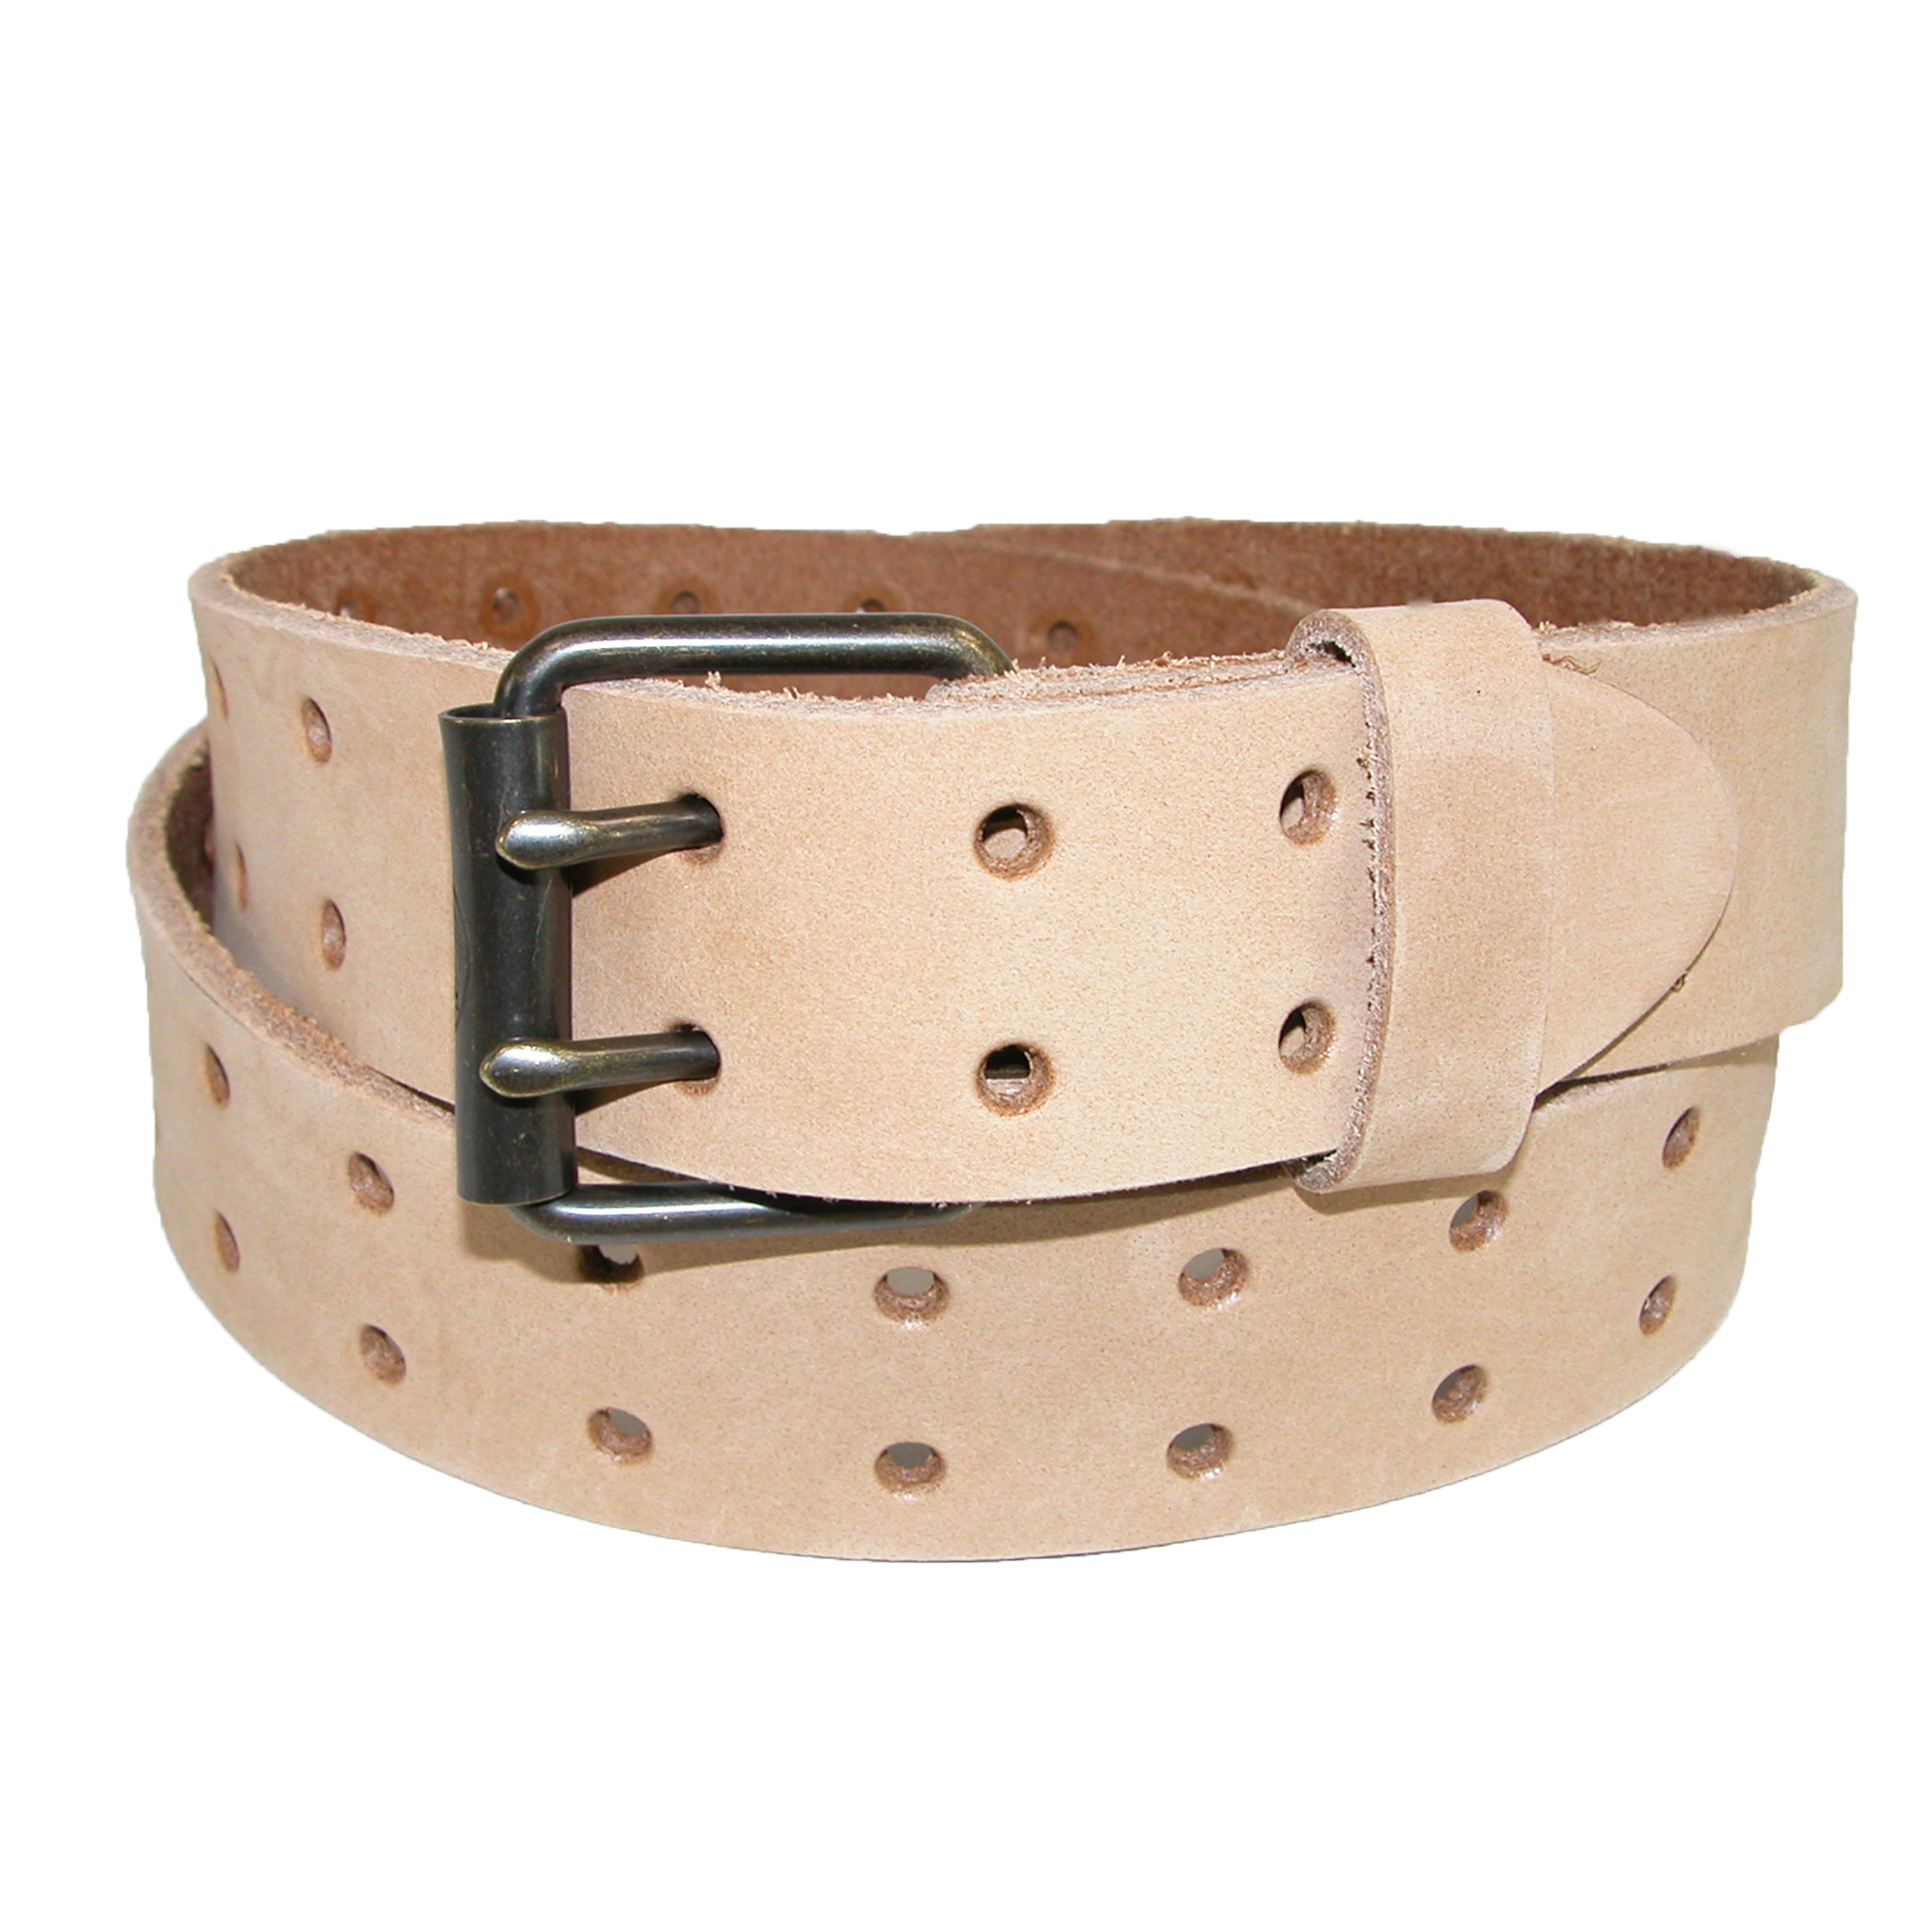 Dickies Size 38 Mens Leather Two Hole Raw Edge Bridle Belt, Tan